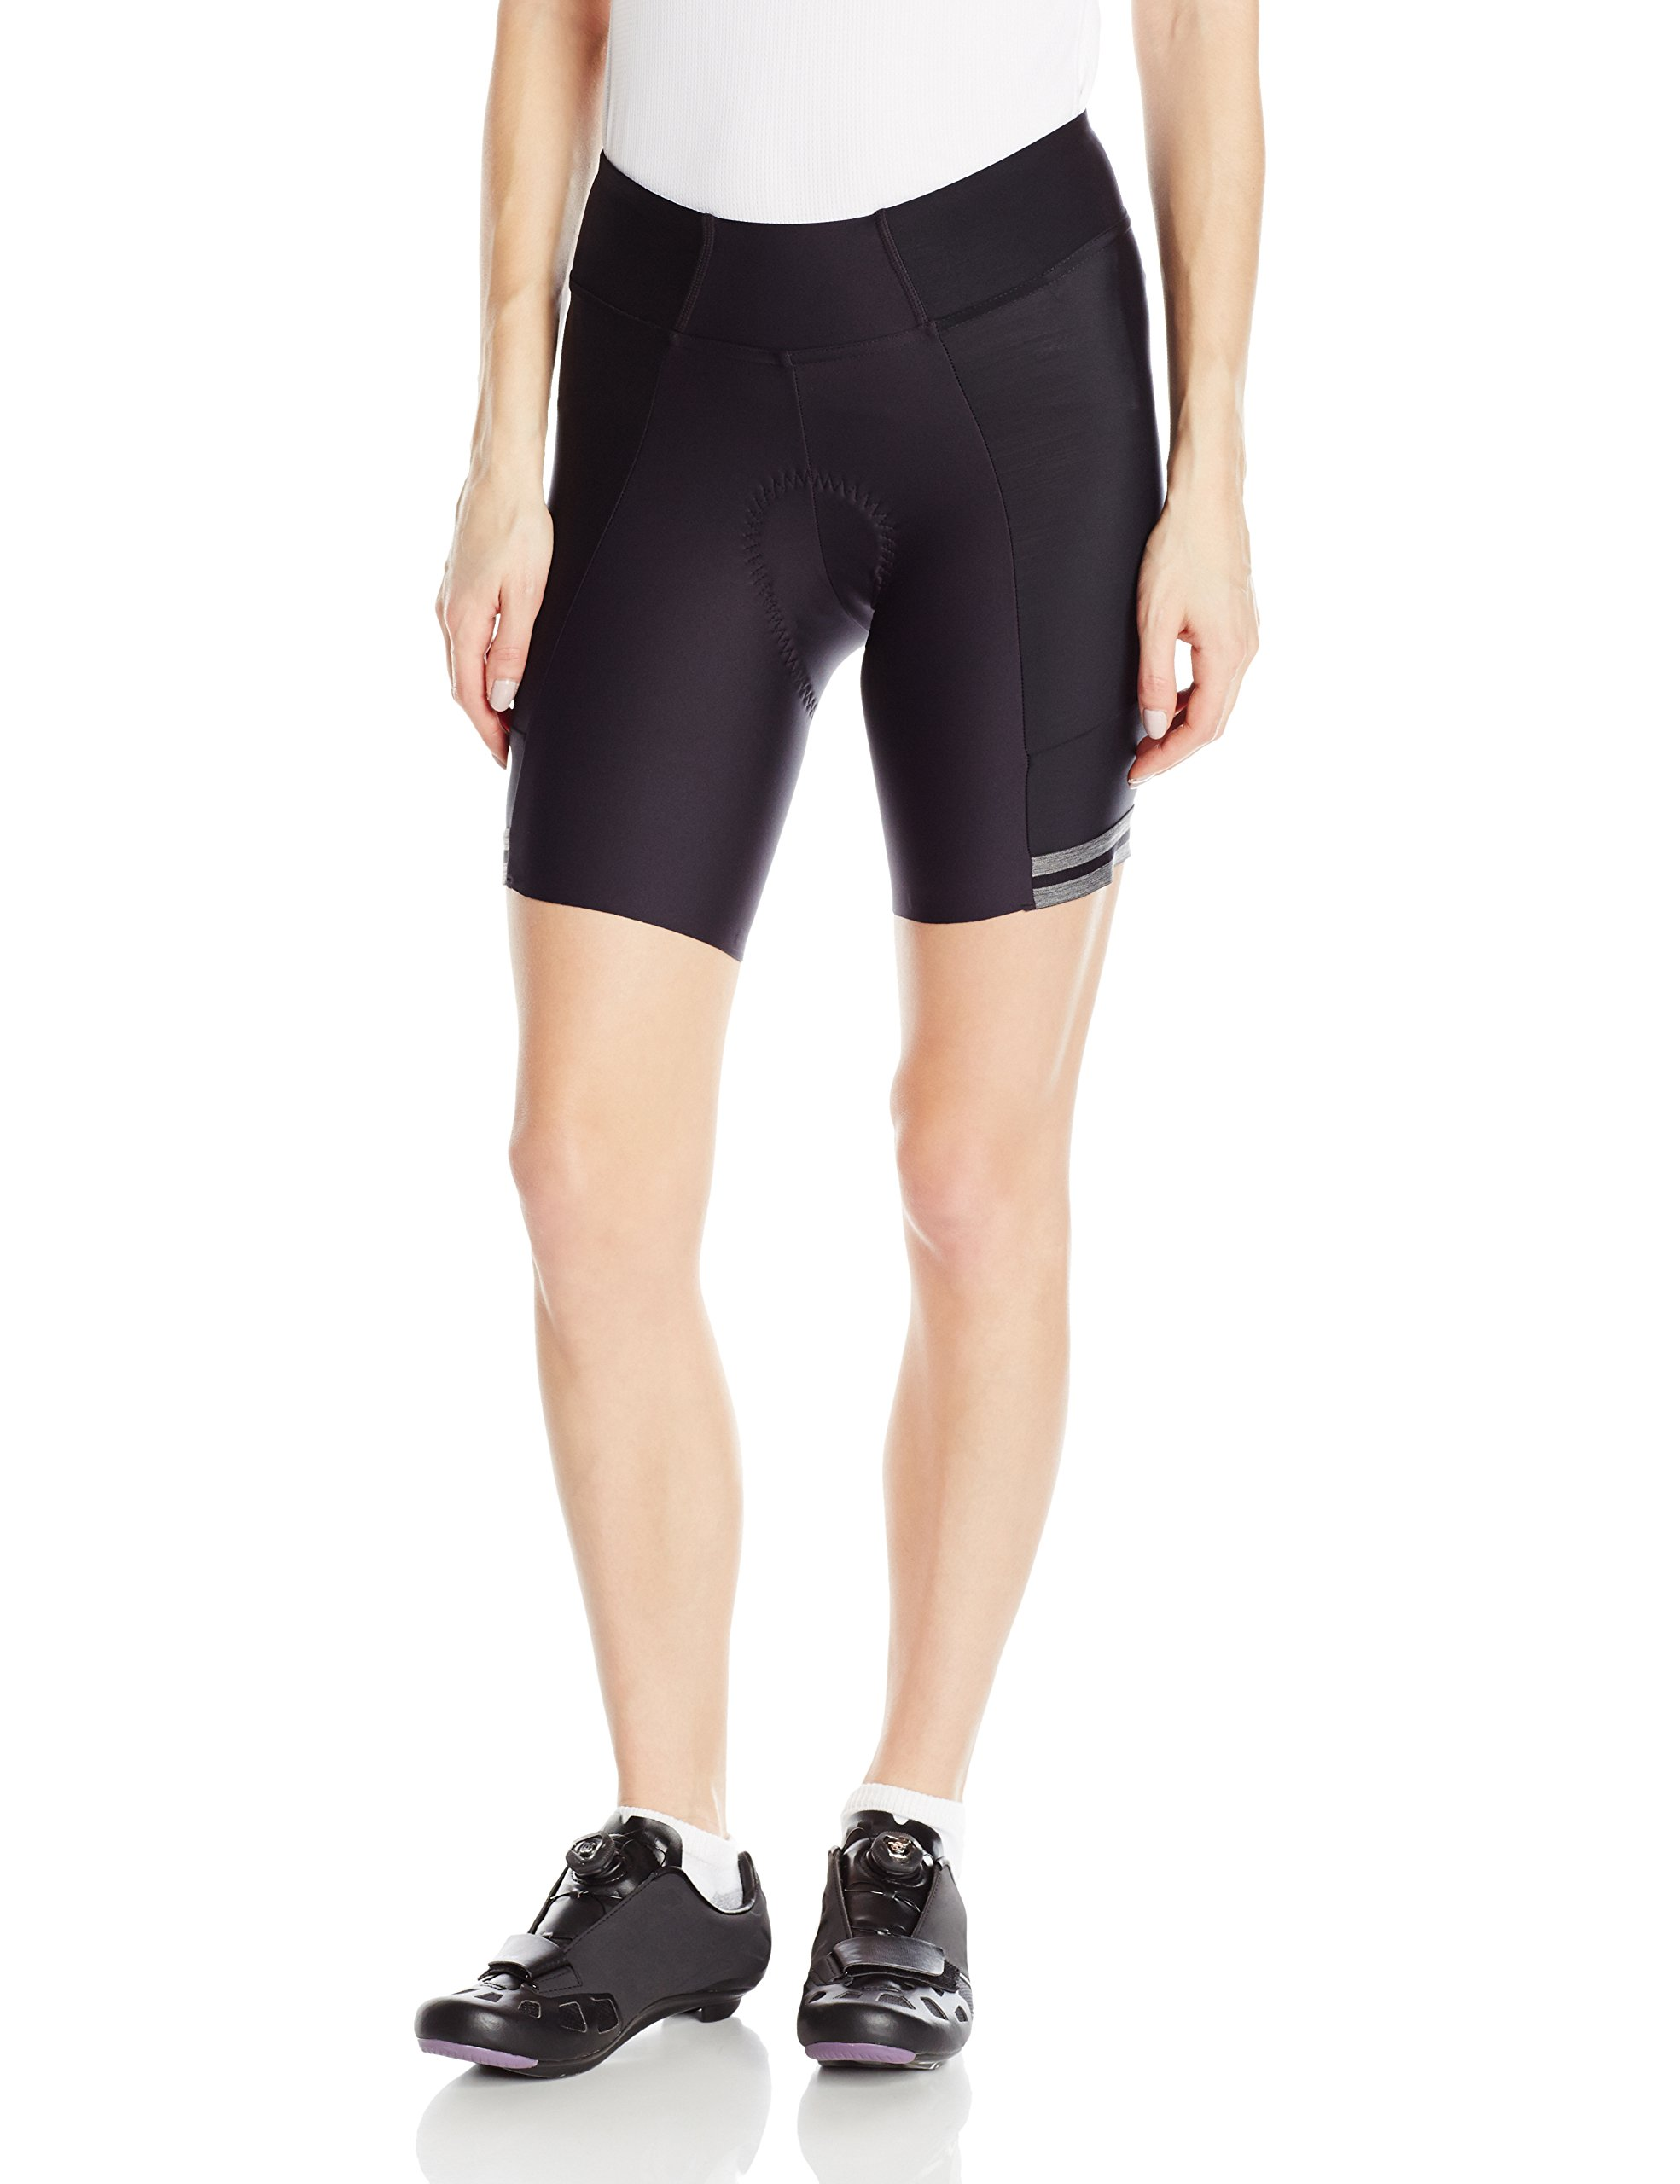 Pearl iZUMi Women's Elite Escape Shorts, Black, Large